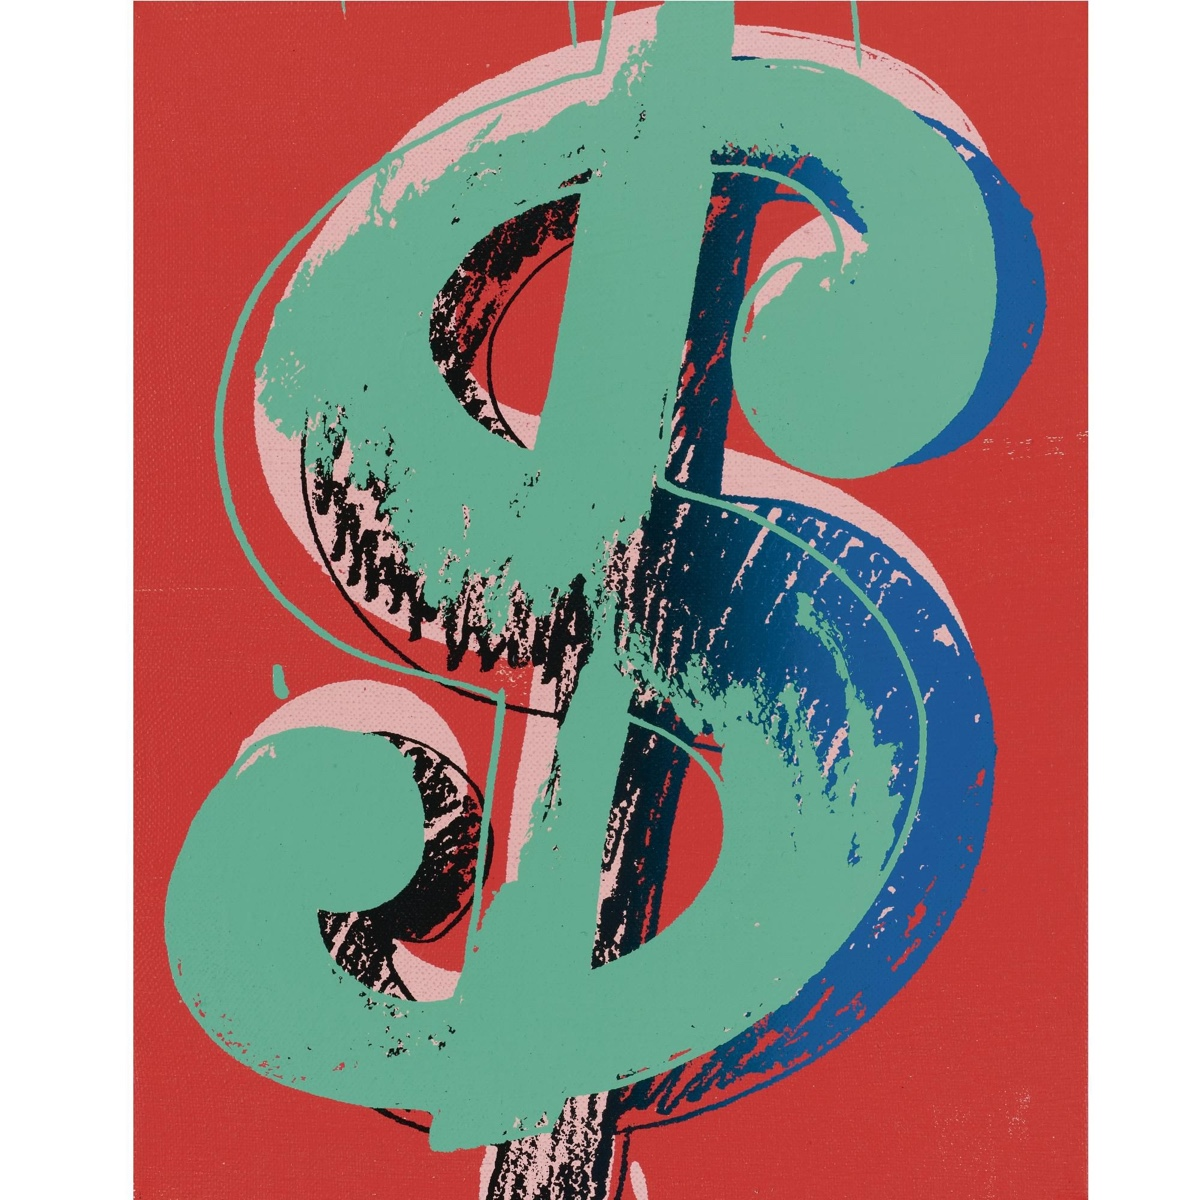 This is just one of a series of drawings and paintings of the Dollar Sign by Andy Warhol.